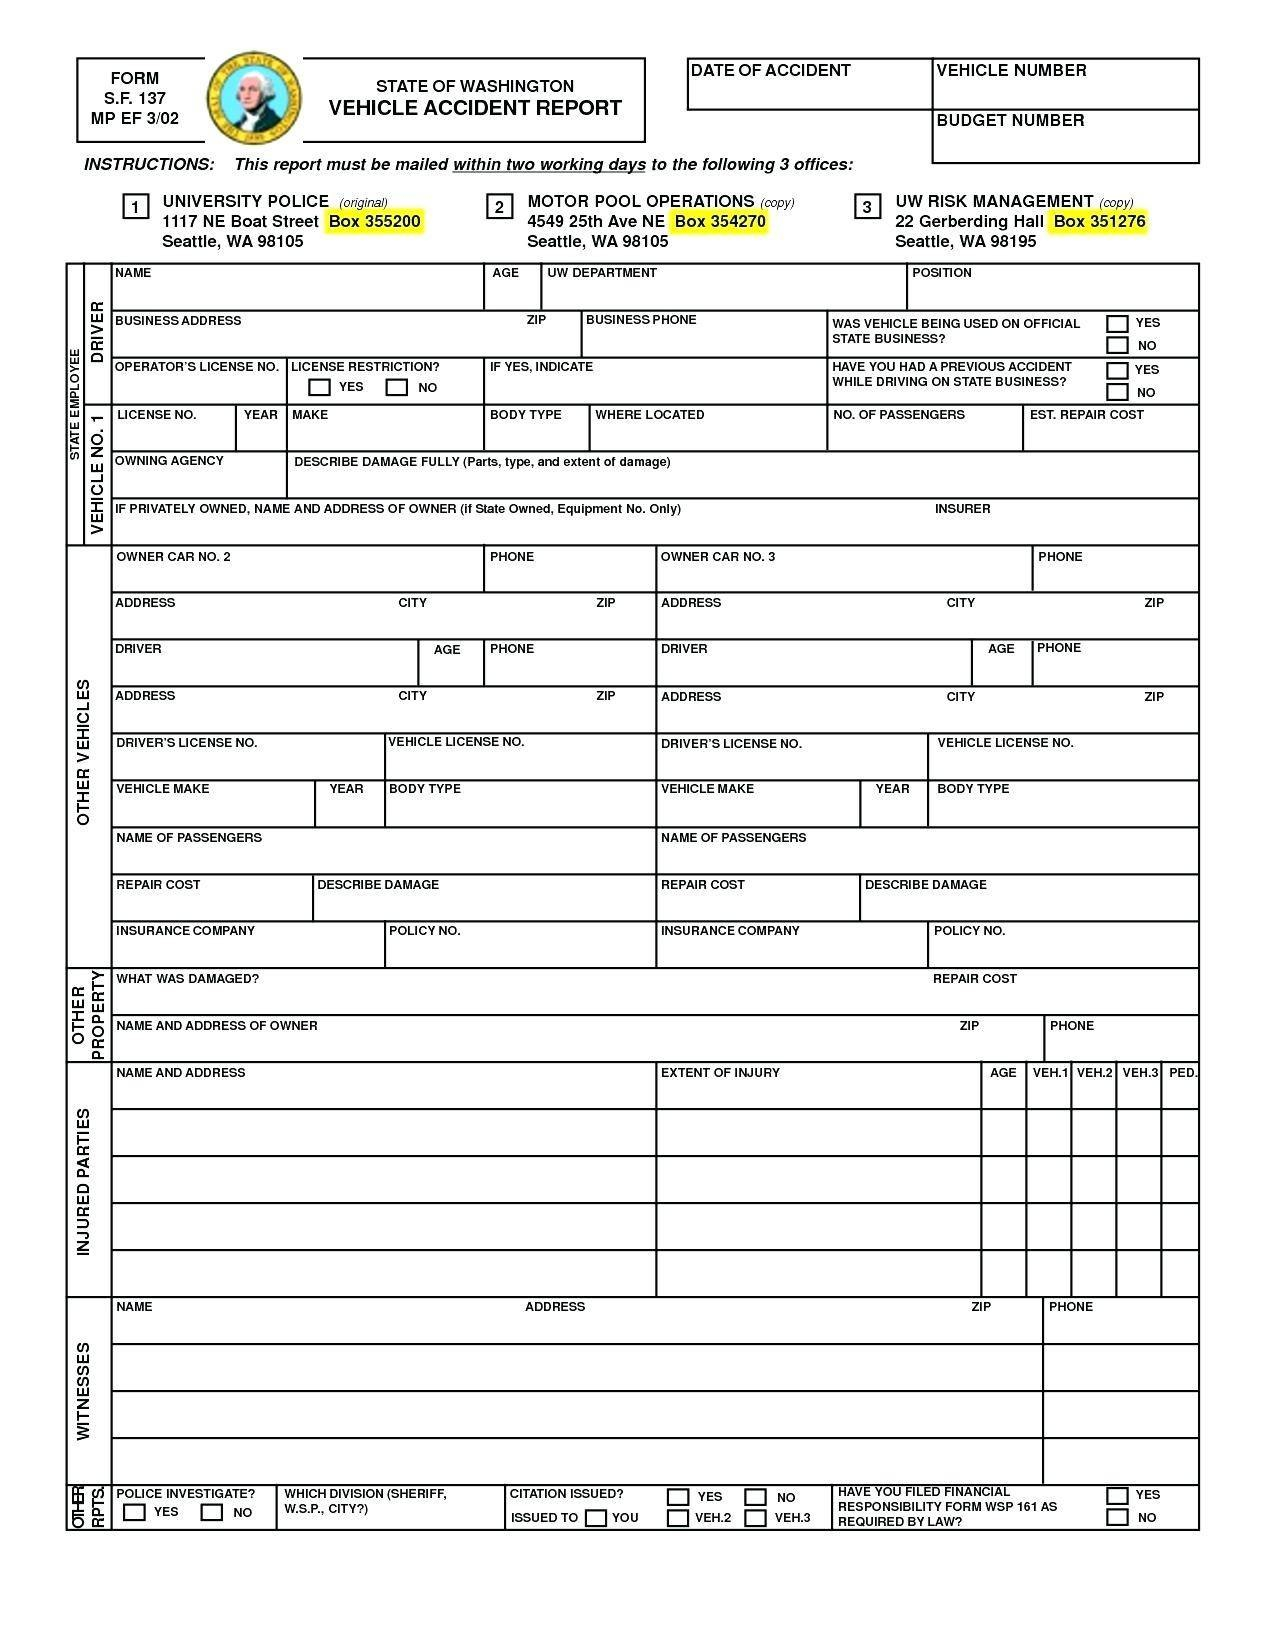 Vehicle Accident Report Form Template Doc Phenomenal Ideas Car With Motor Vehicle Accident Report Form Template